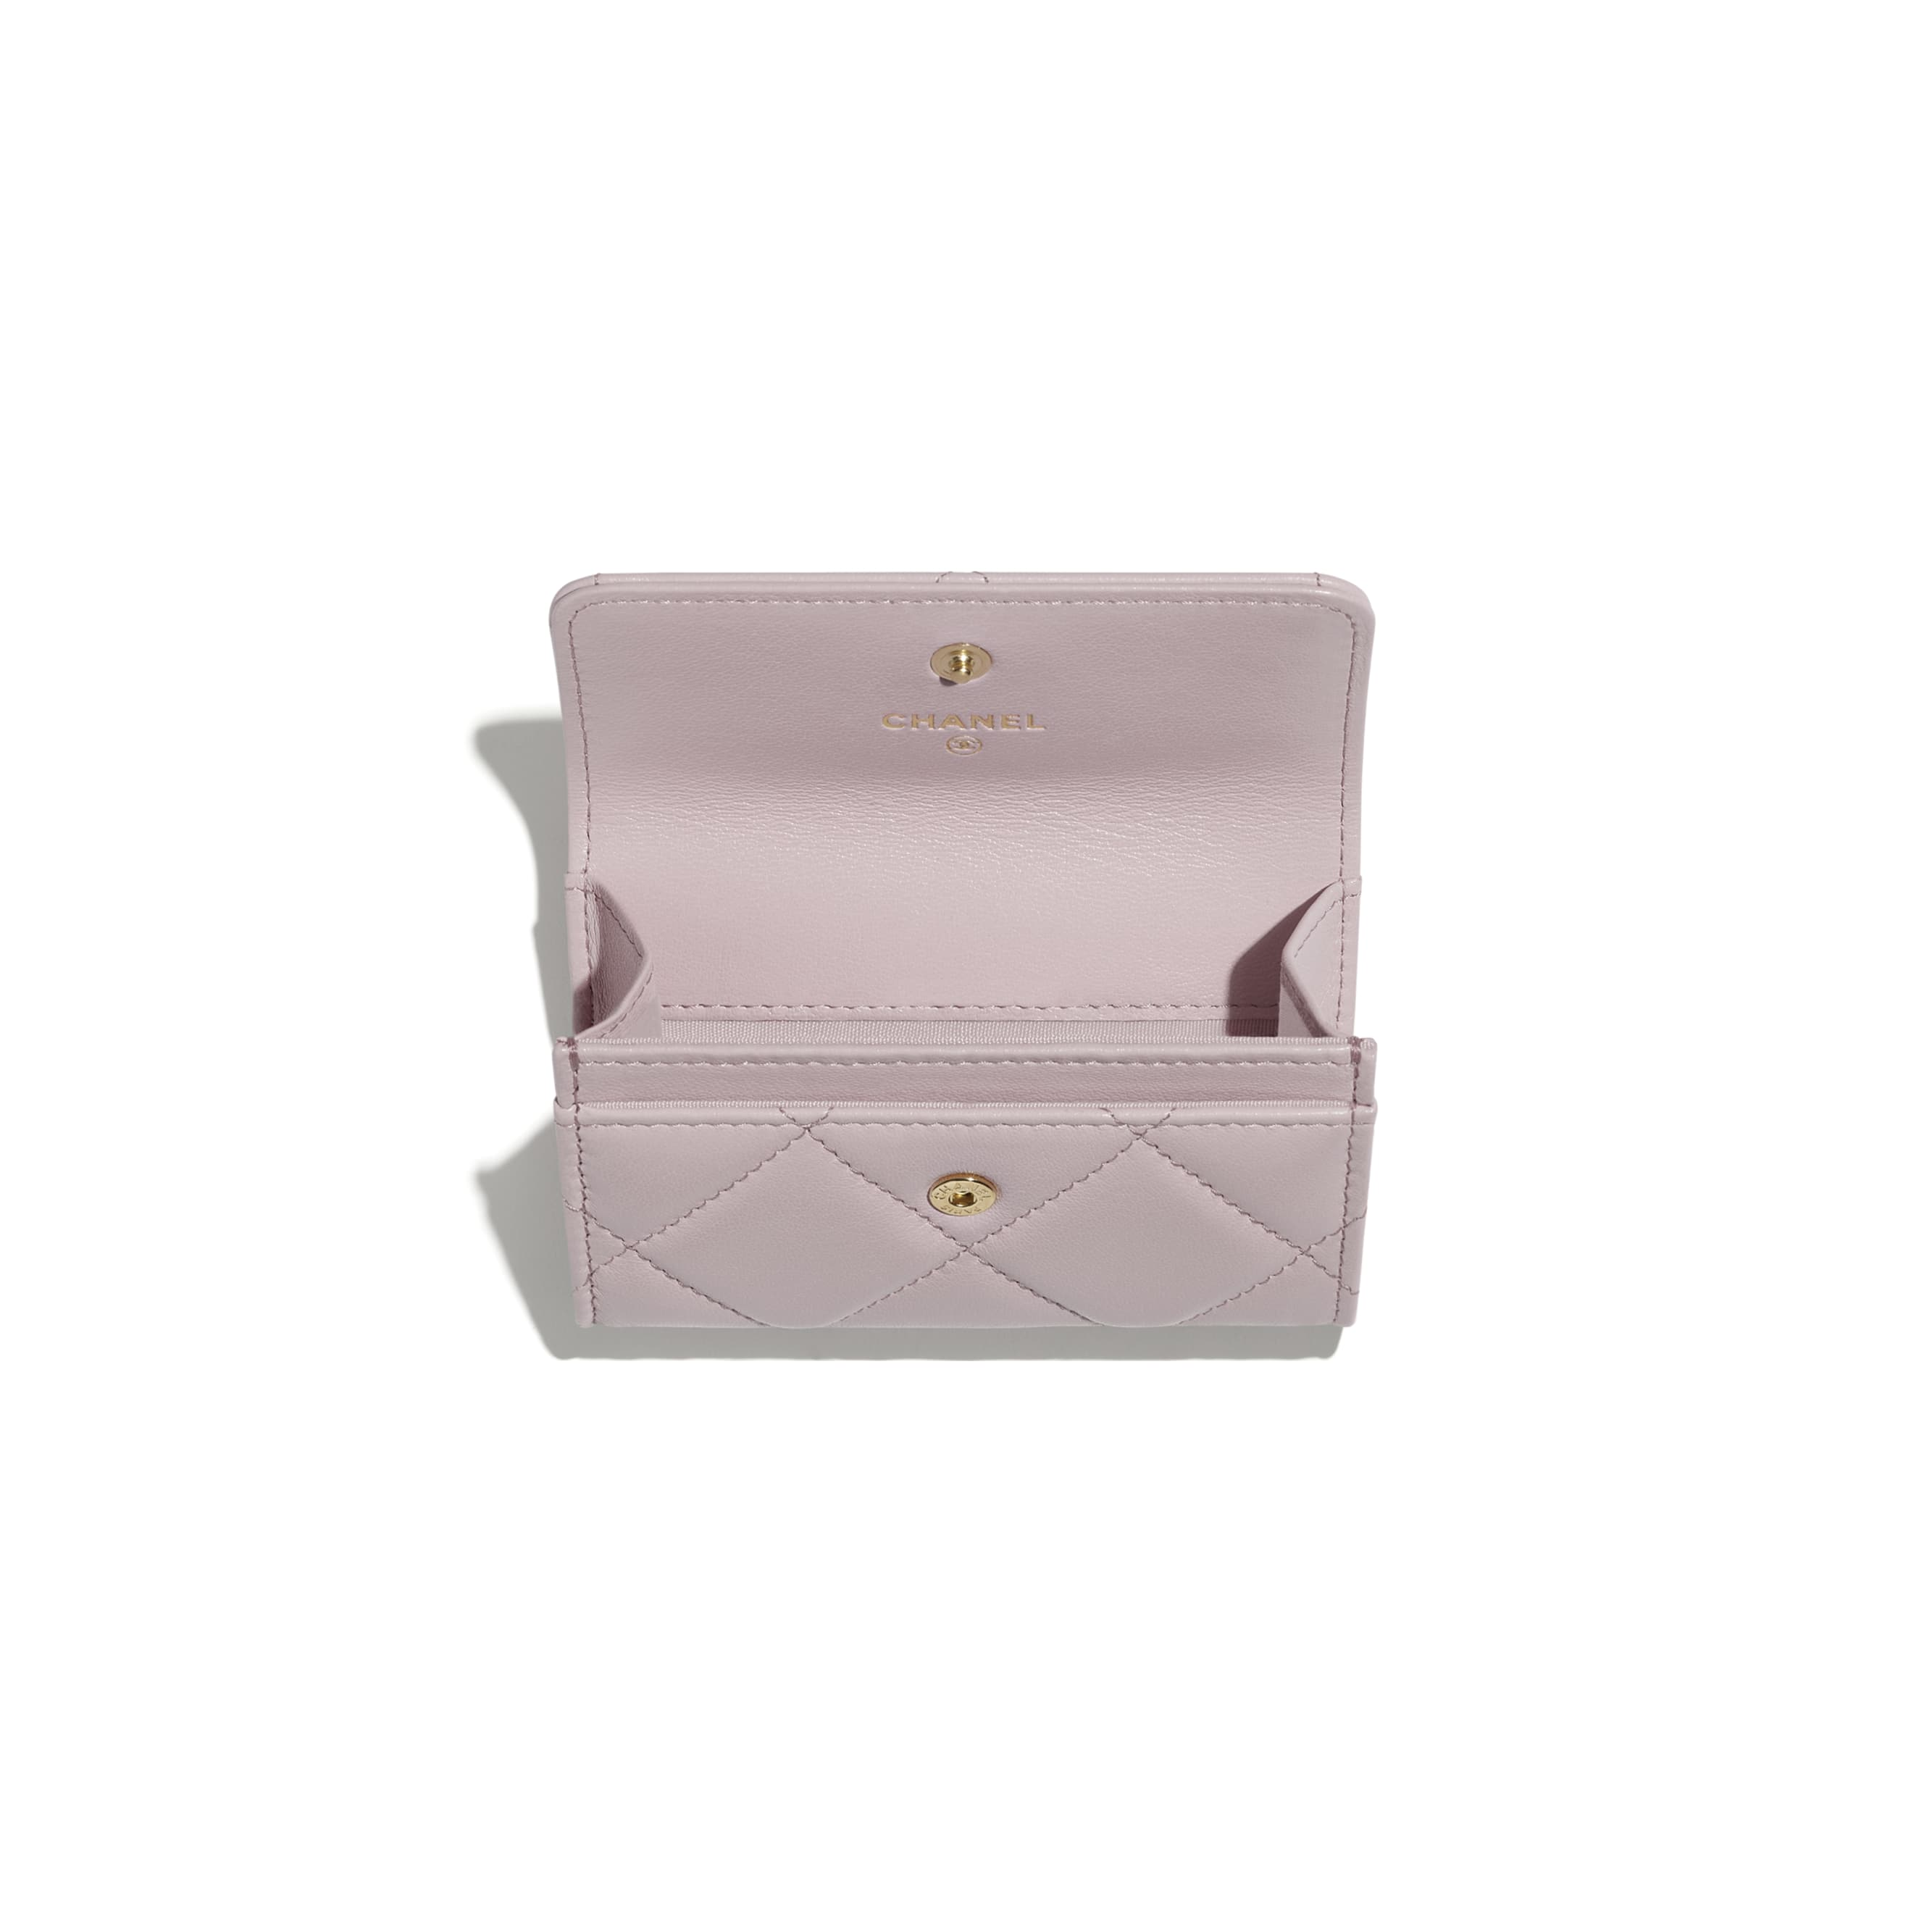 CHANEL 19 Flap Card Holder - Light Pink - Lambskin, Gold-Tone, Silver-Tone & Ruthenium-Finish Metal - CHANEL - Alternative view - see standard sized version